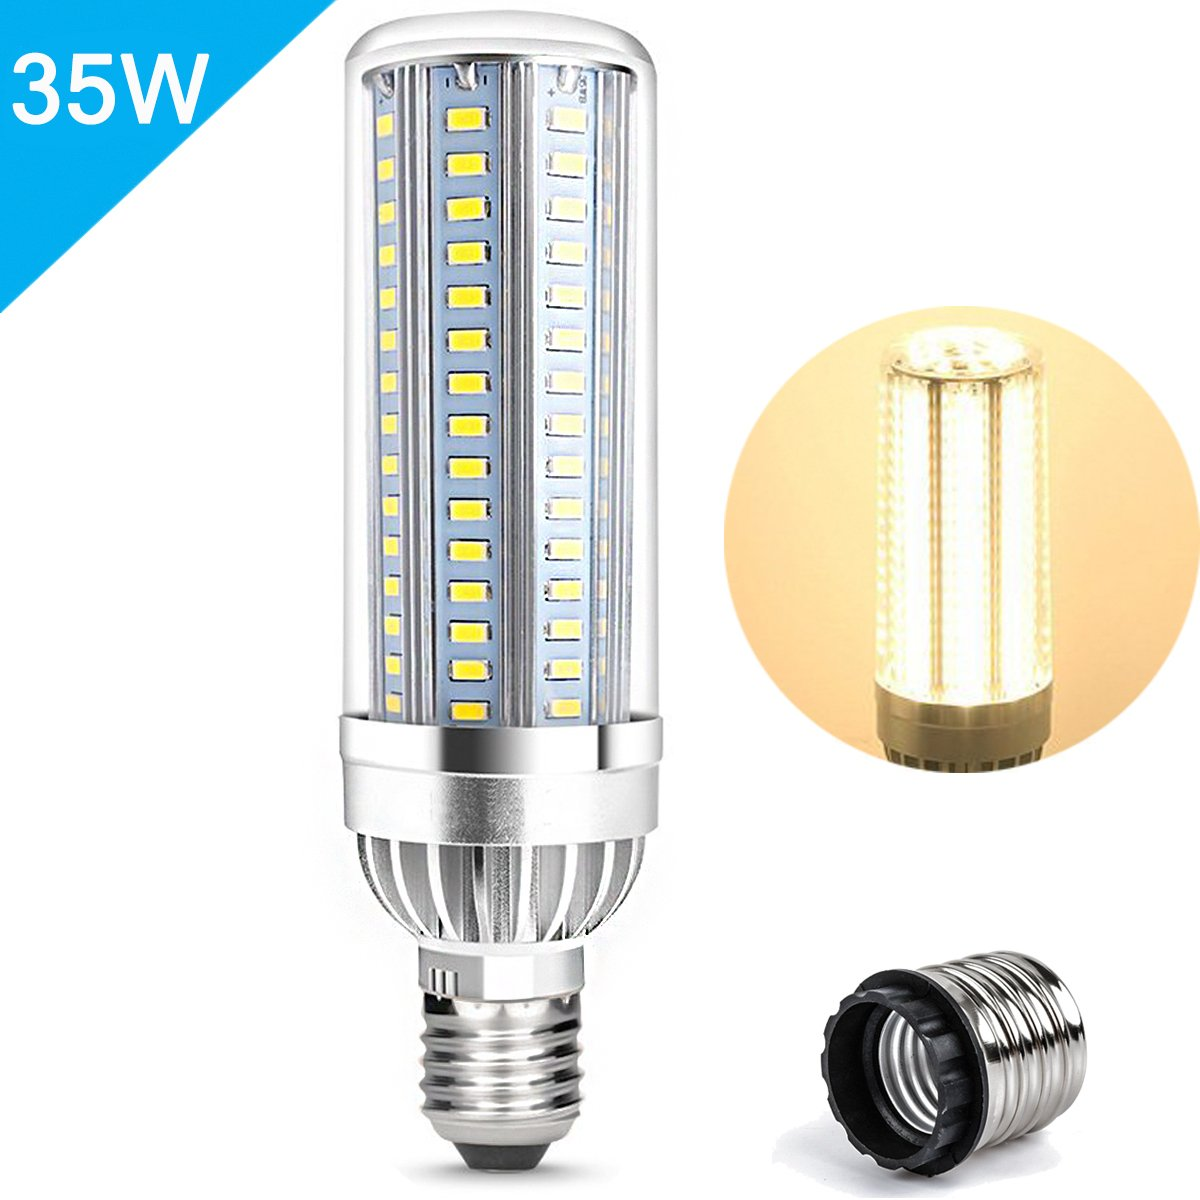 Lampadine led e27 25W LED Mais lampada Equivalenti 250W Bianco Freddo 6500K 2500LM Super Luminosa Non Dimmerabile [Classe di efficienza energetica A+] AWE-LIGHT